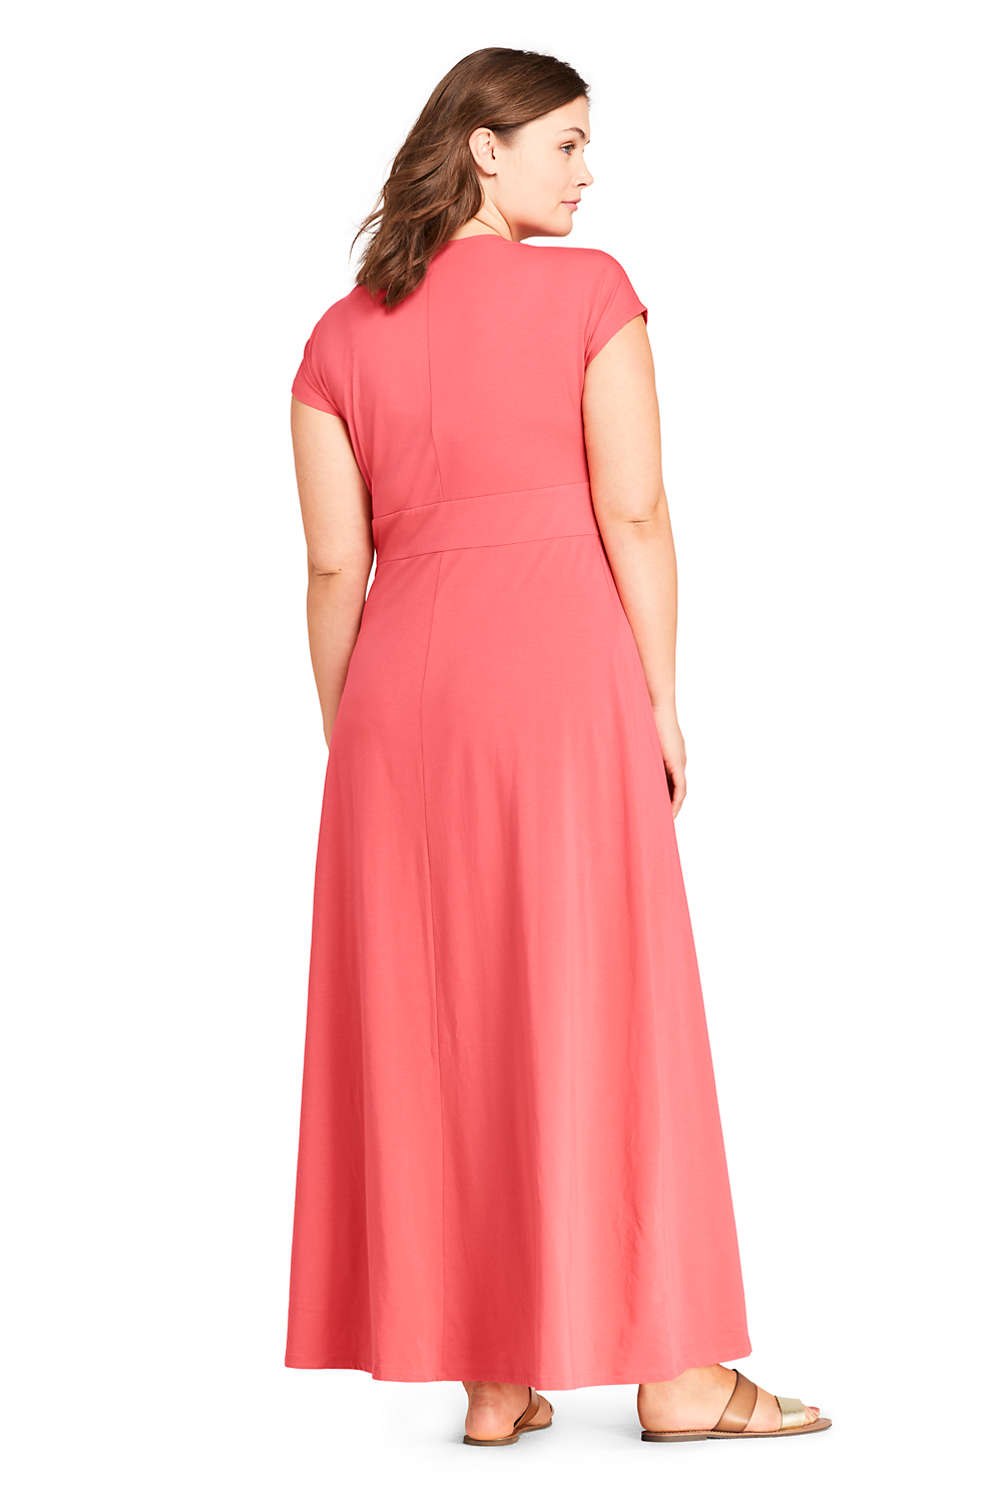 Peaches Boutique Plus Size Dresses - Ficts